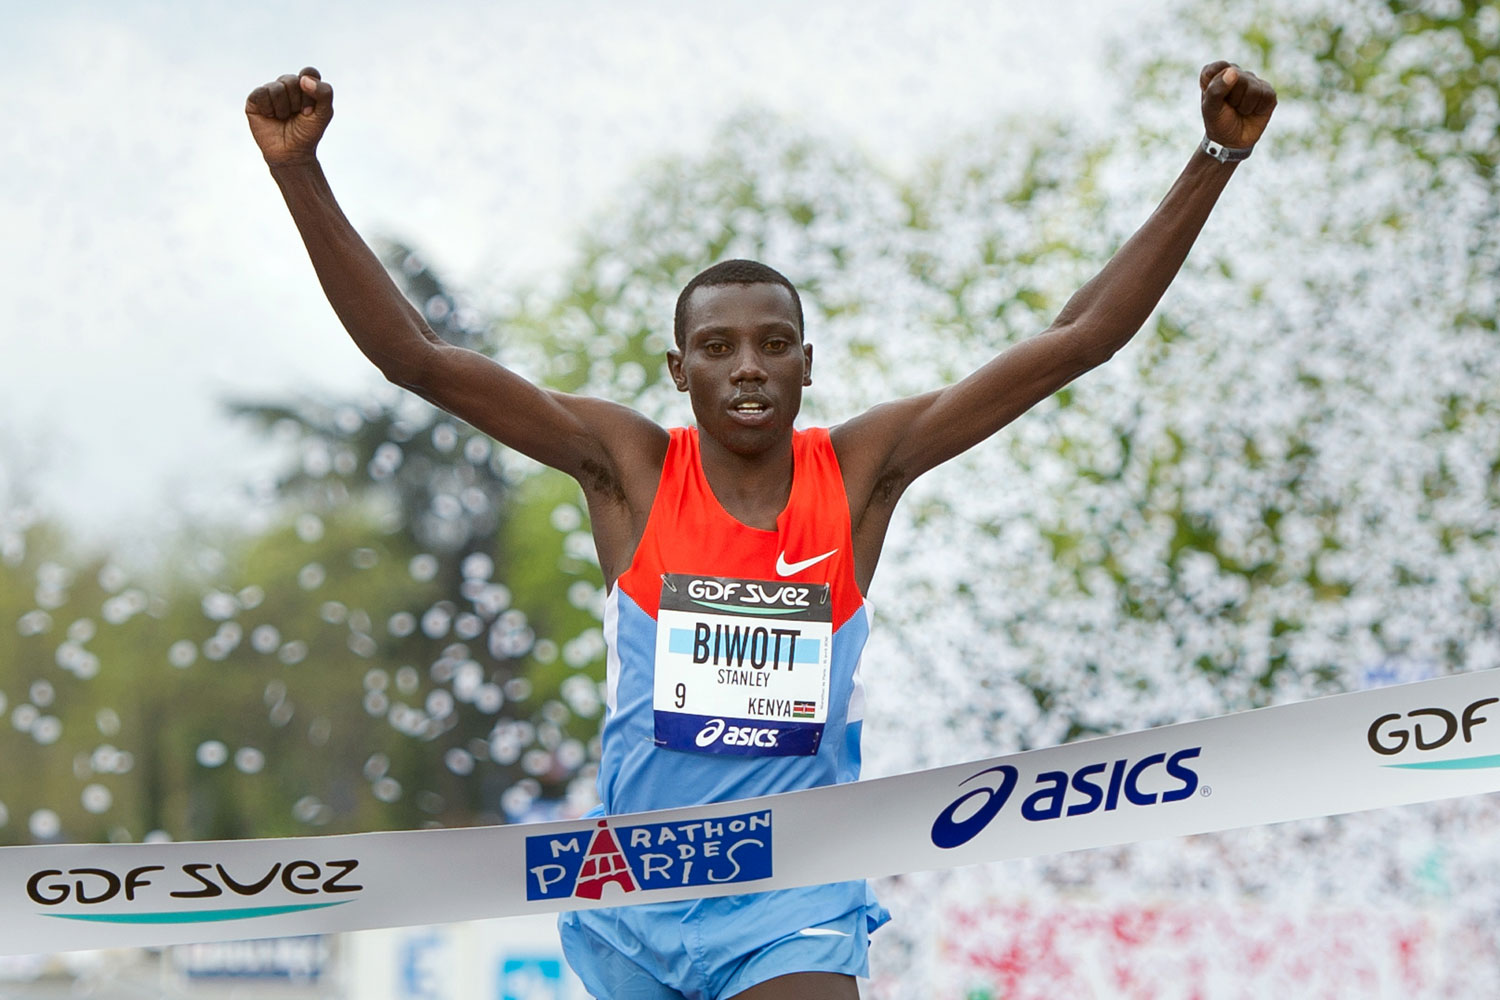 Stanley Biwott crosses the finish line of the 36th Paris Marathon in April 2012.